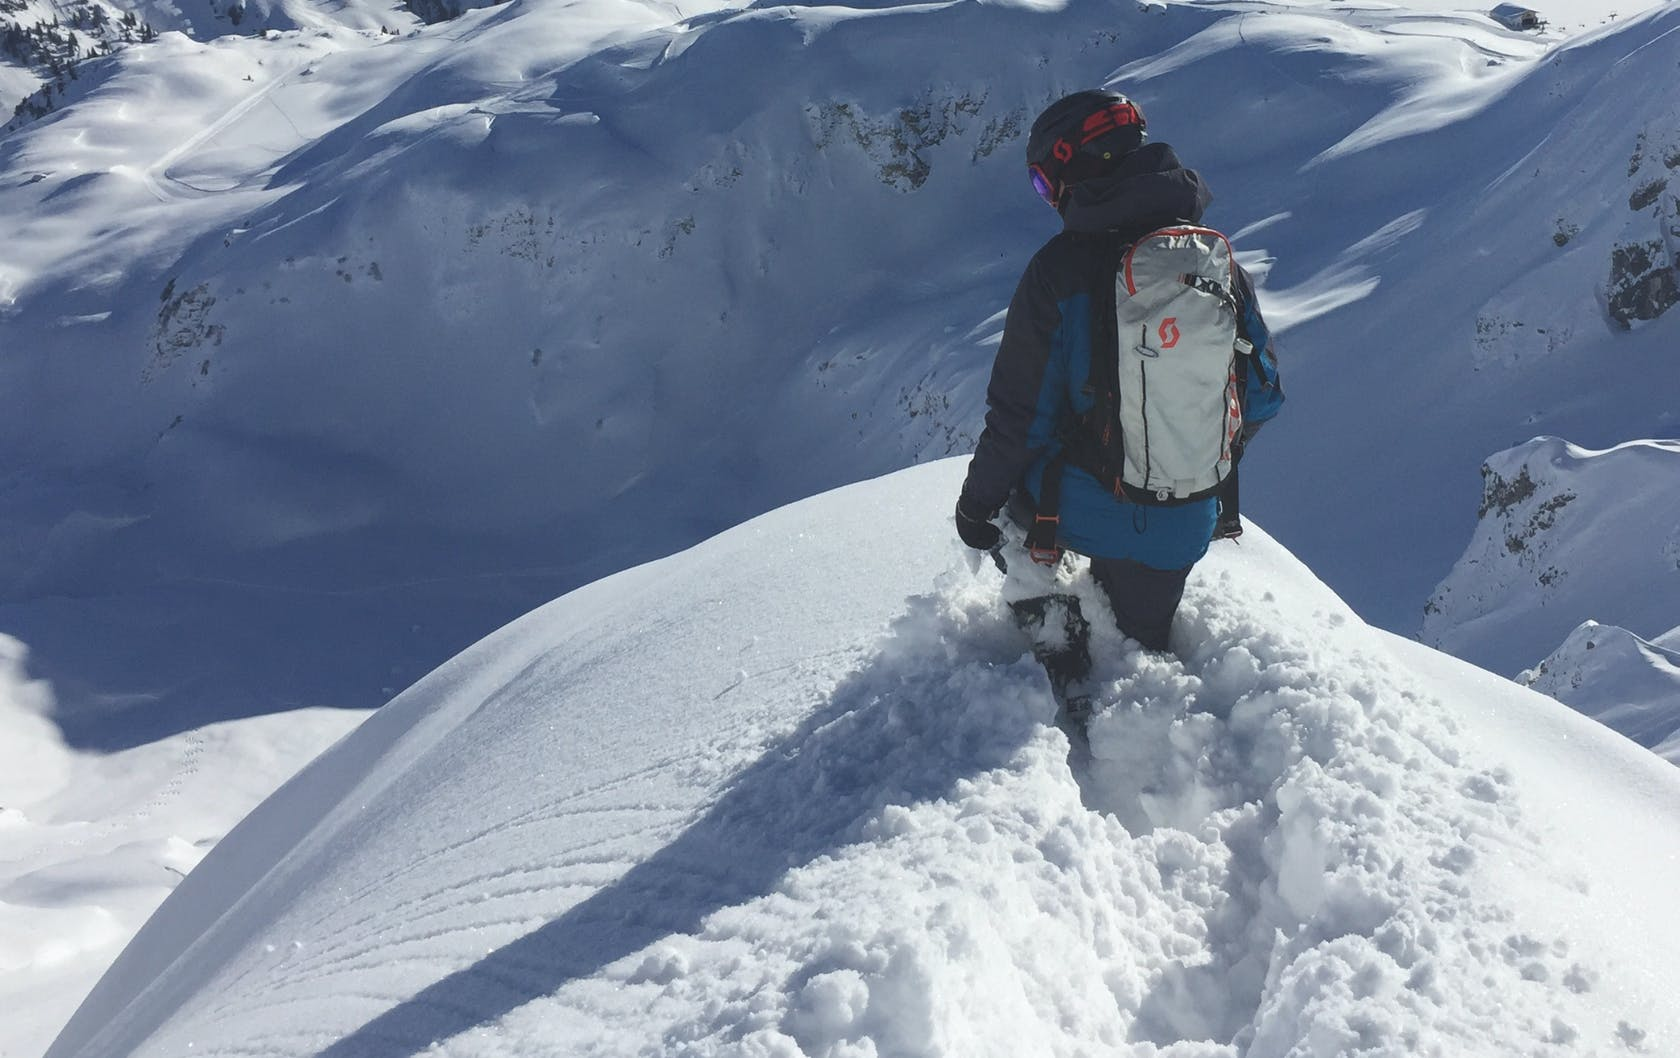 Scott Sports Scialpinismo e Freeride